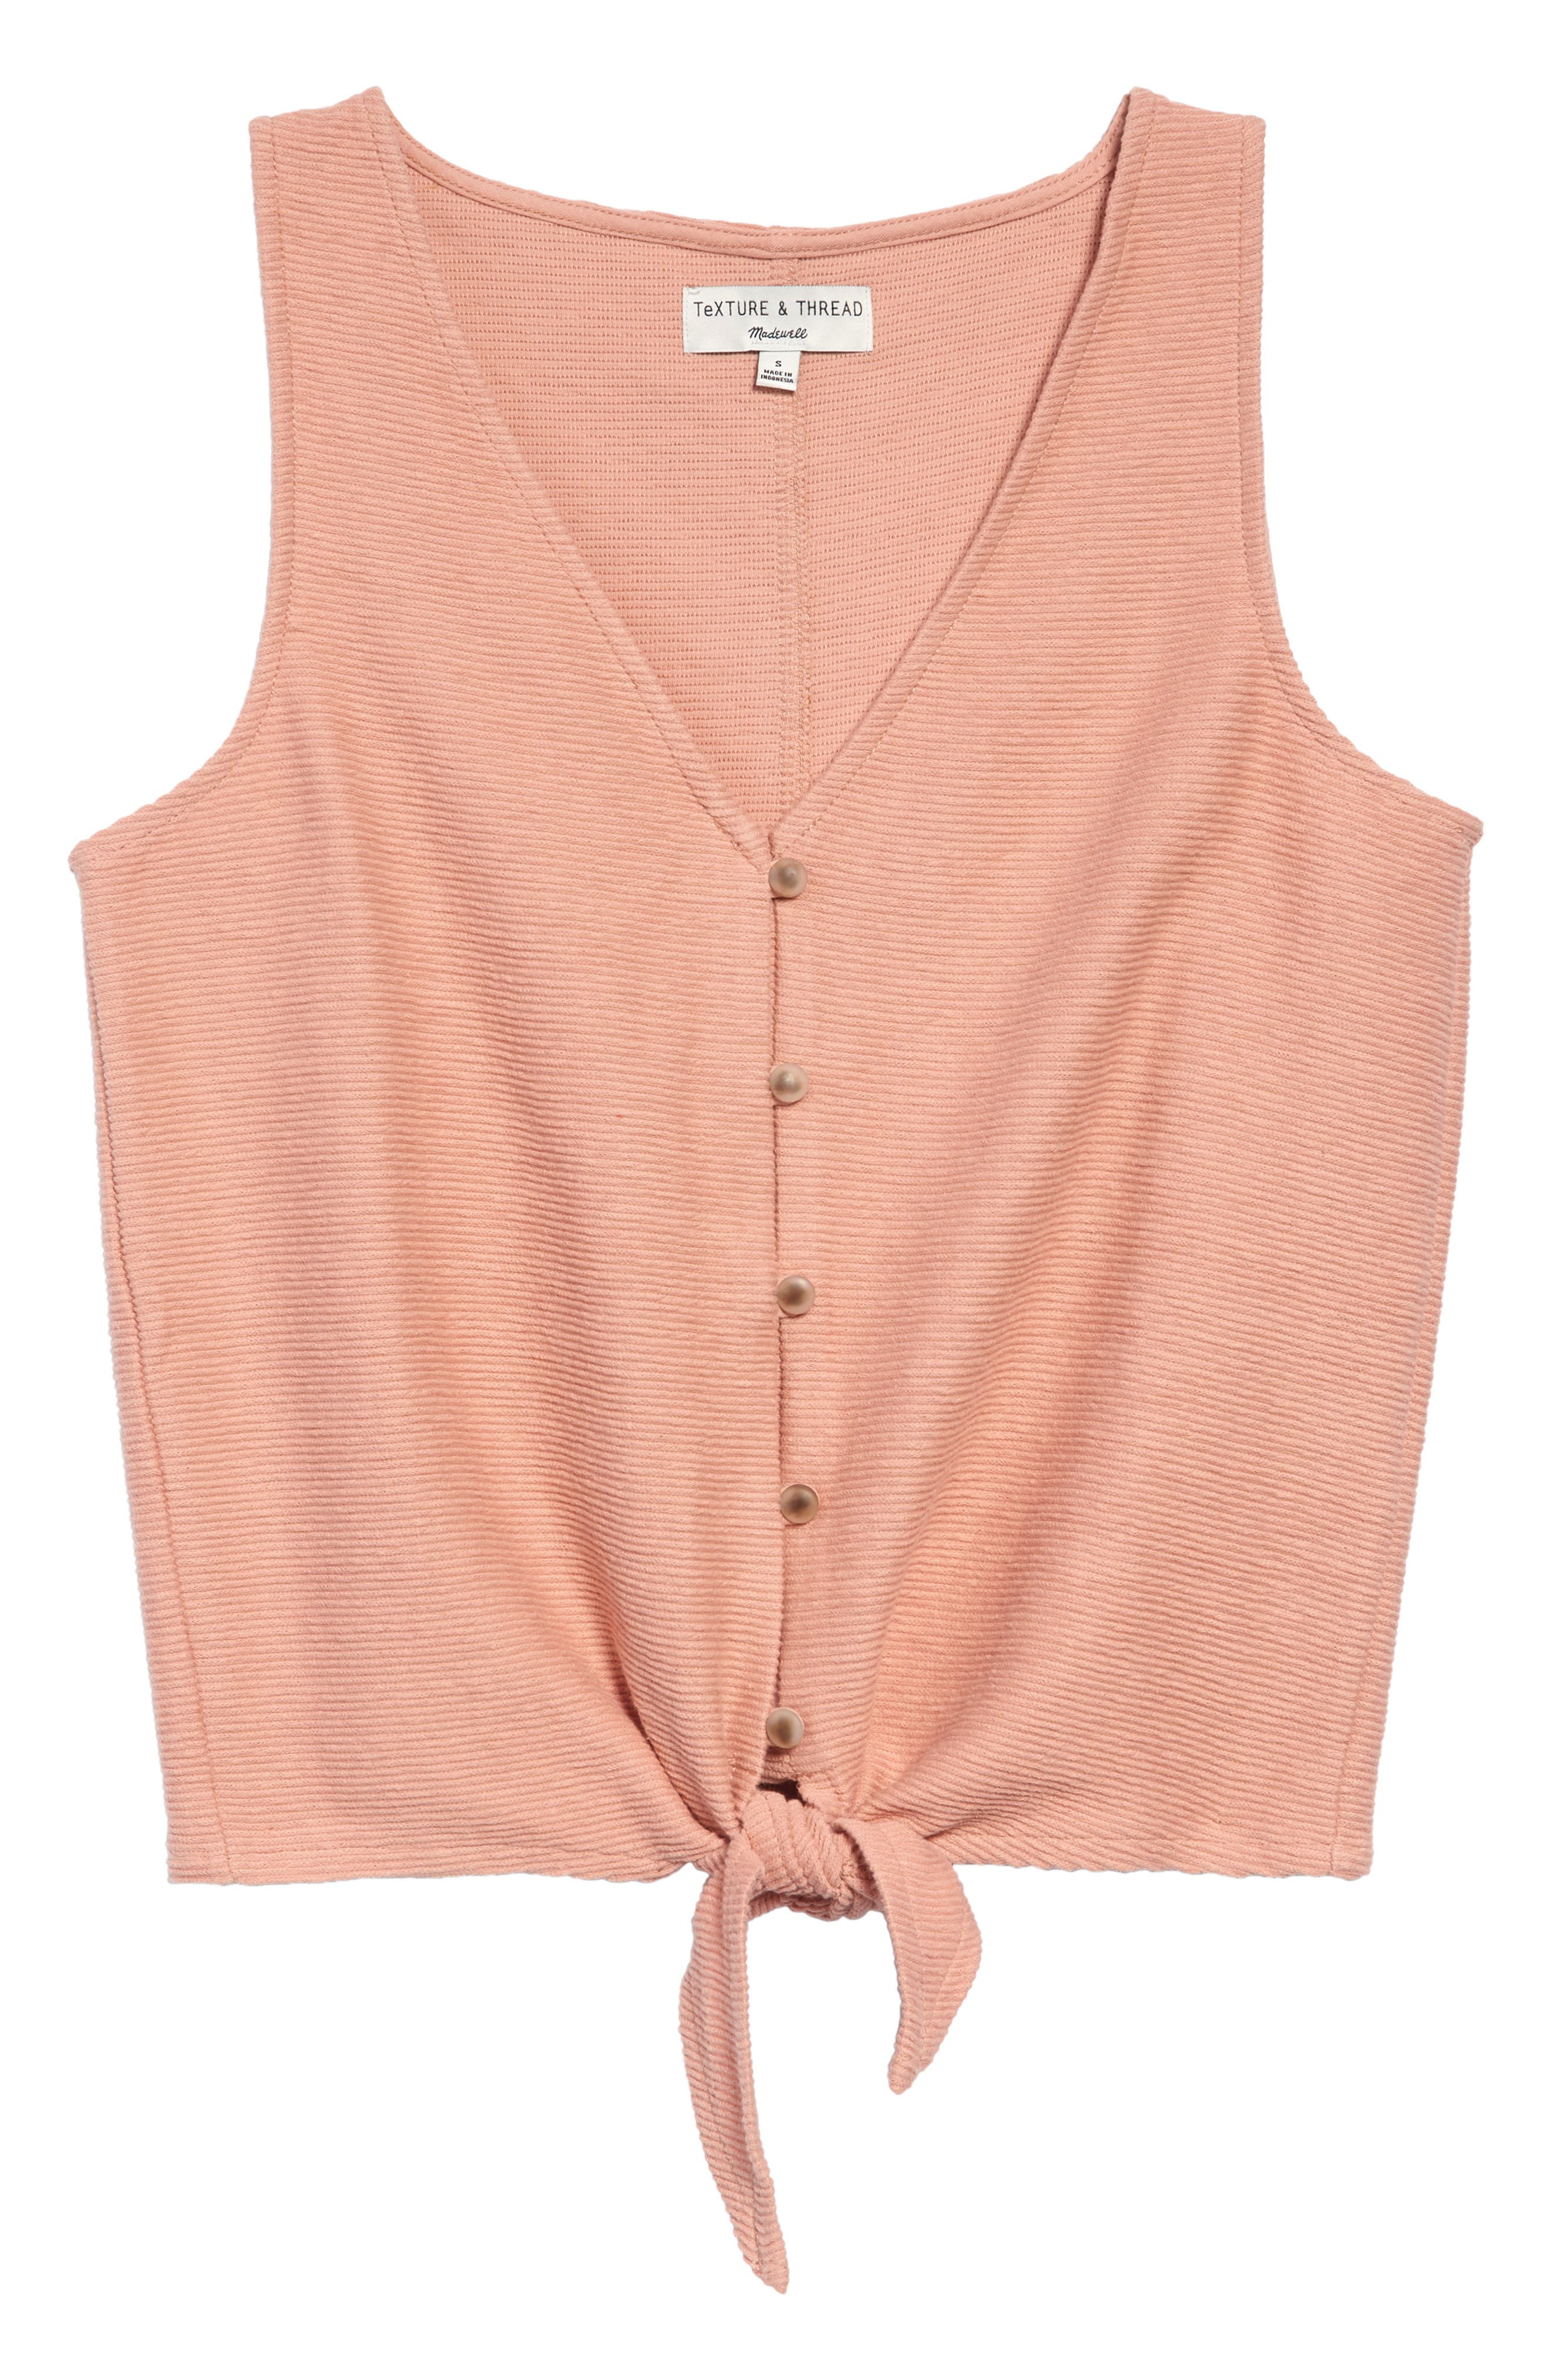 Image of Madewell Texture & Thread Button Front Tie Tank